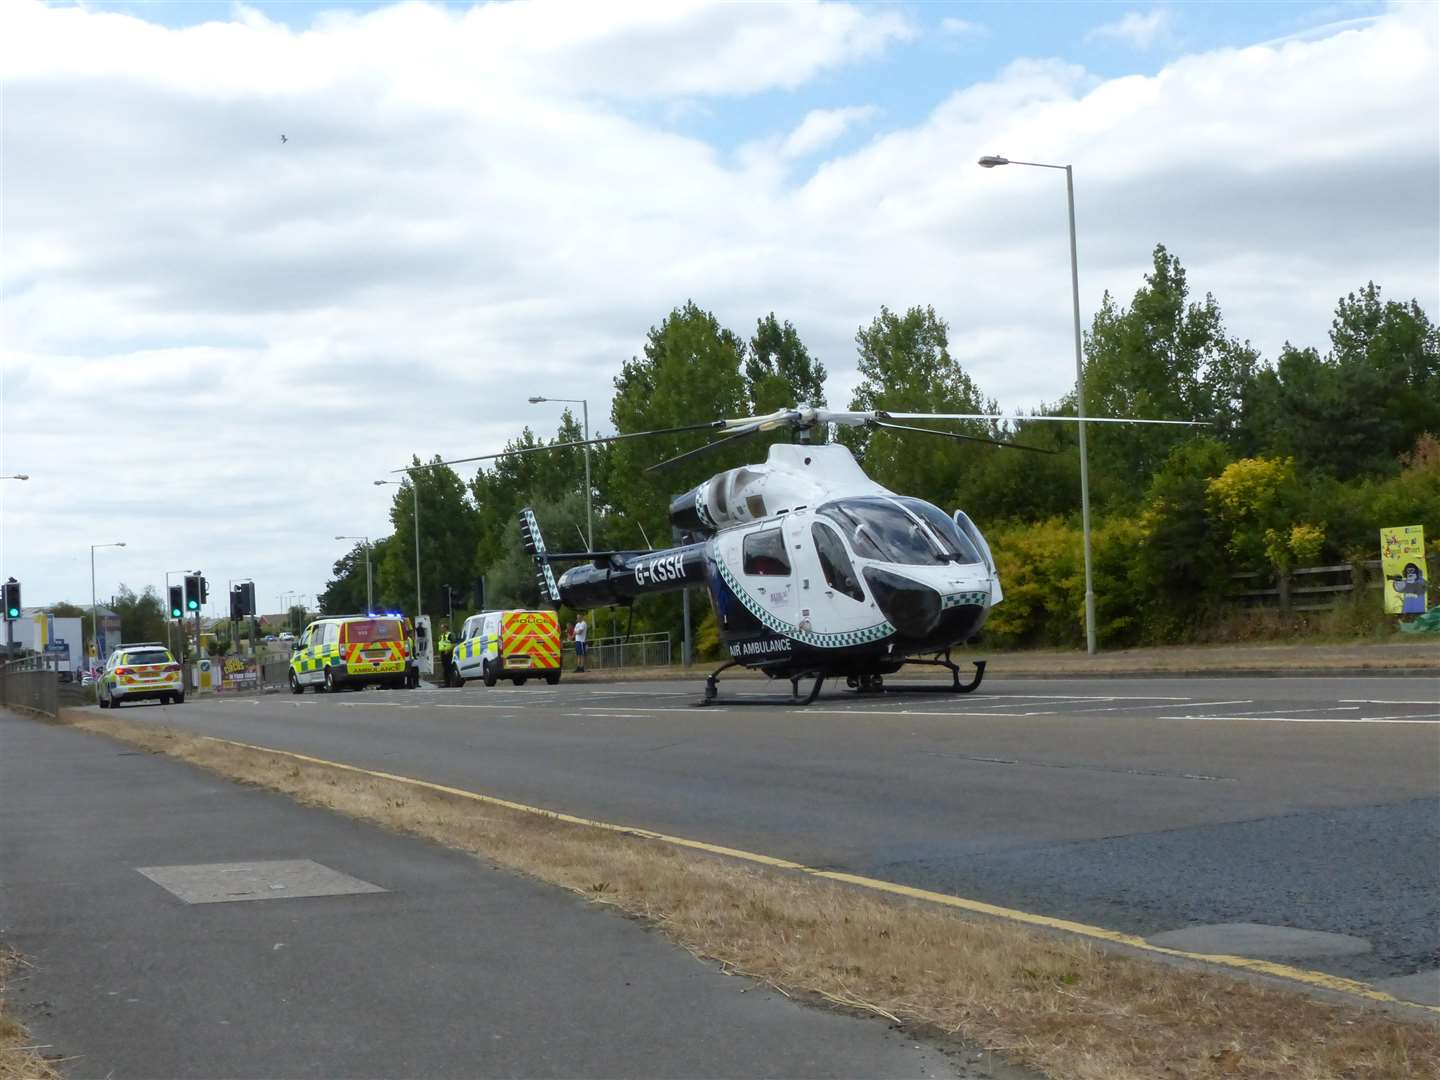 The air ambulance at the scene. Picture: Andy Clark